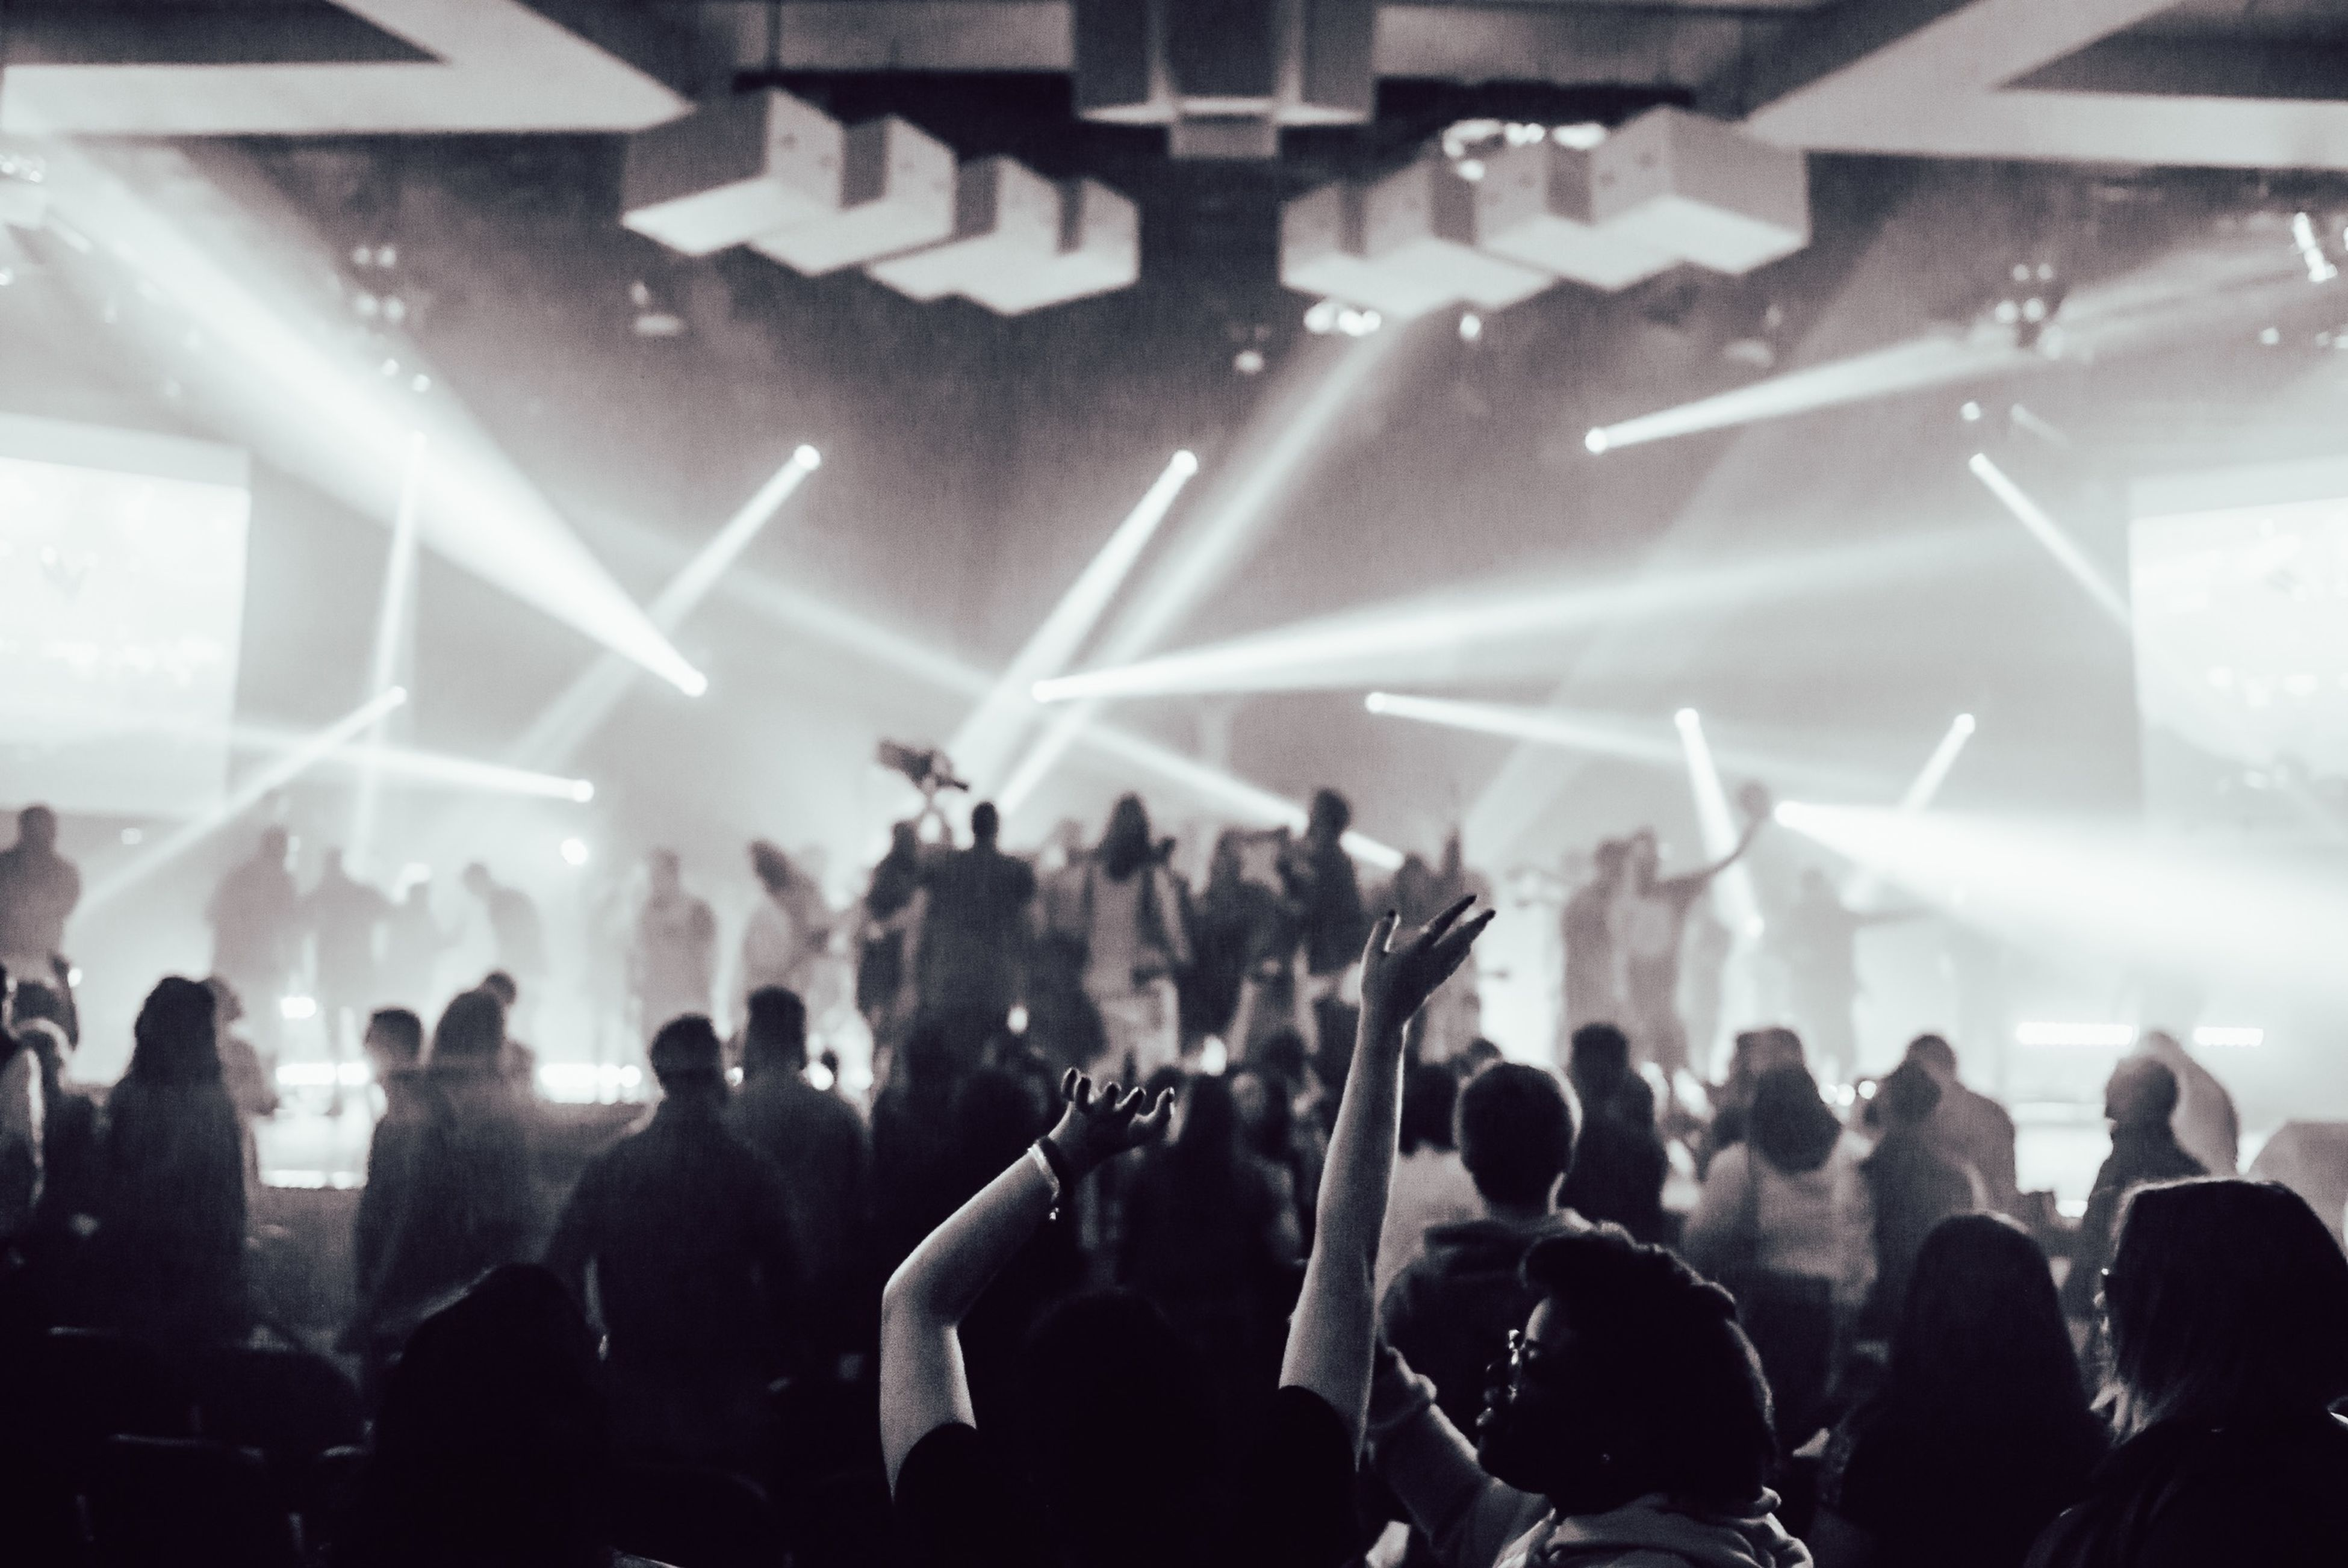 indoors, large group of people, crowd, lifestyles, men, illuminated, person, performance, arts culture and entertainment, nightlife, music, leisure activity, stage - performance space, enjoyment, lighting equipment, event, togetherness, popular music concert